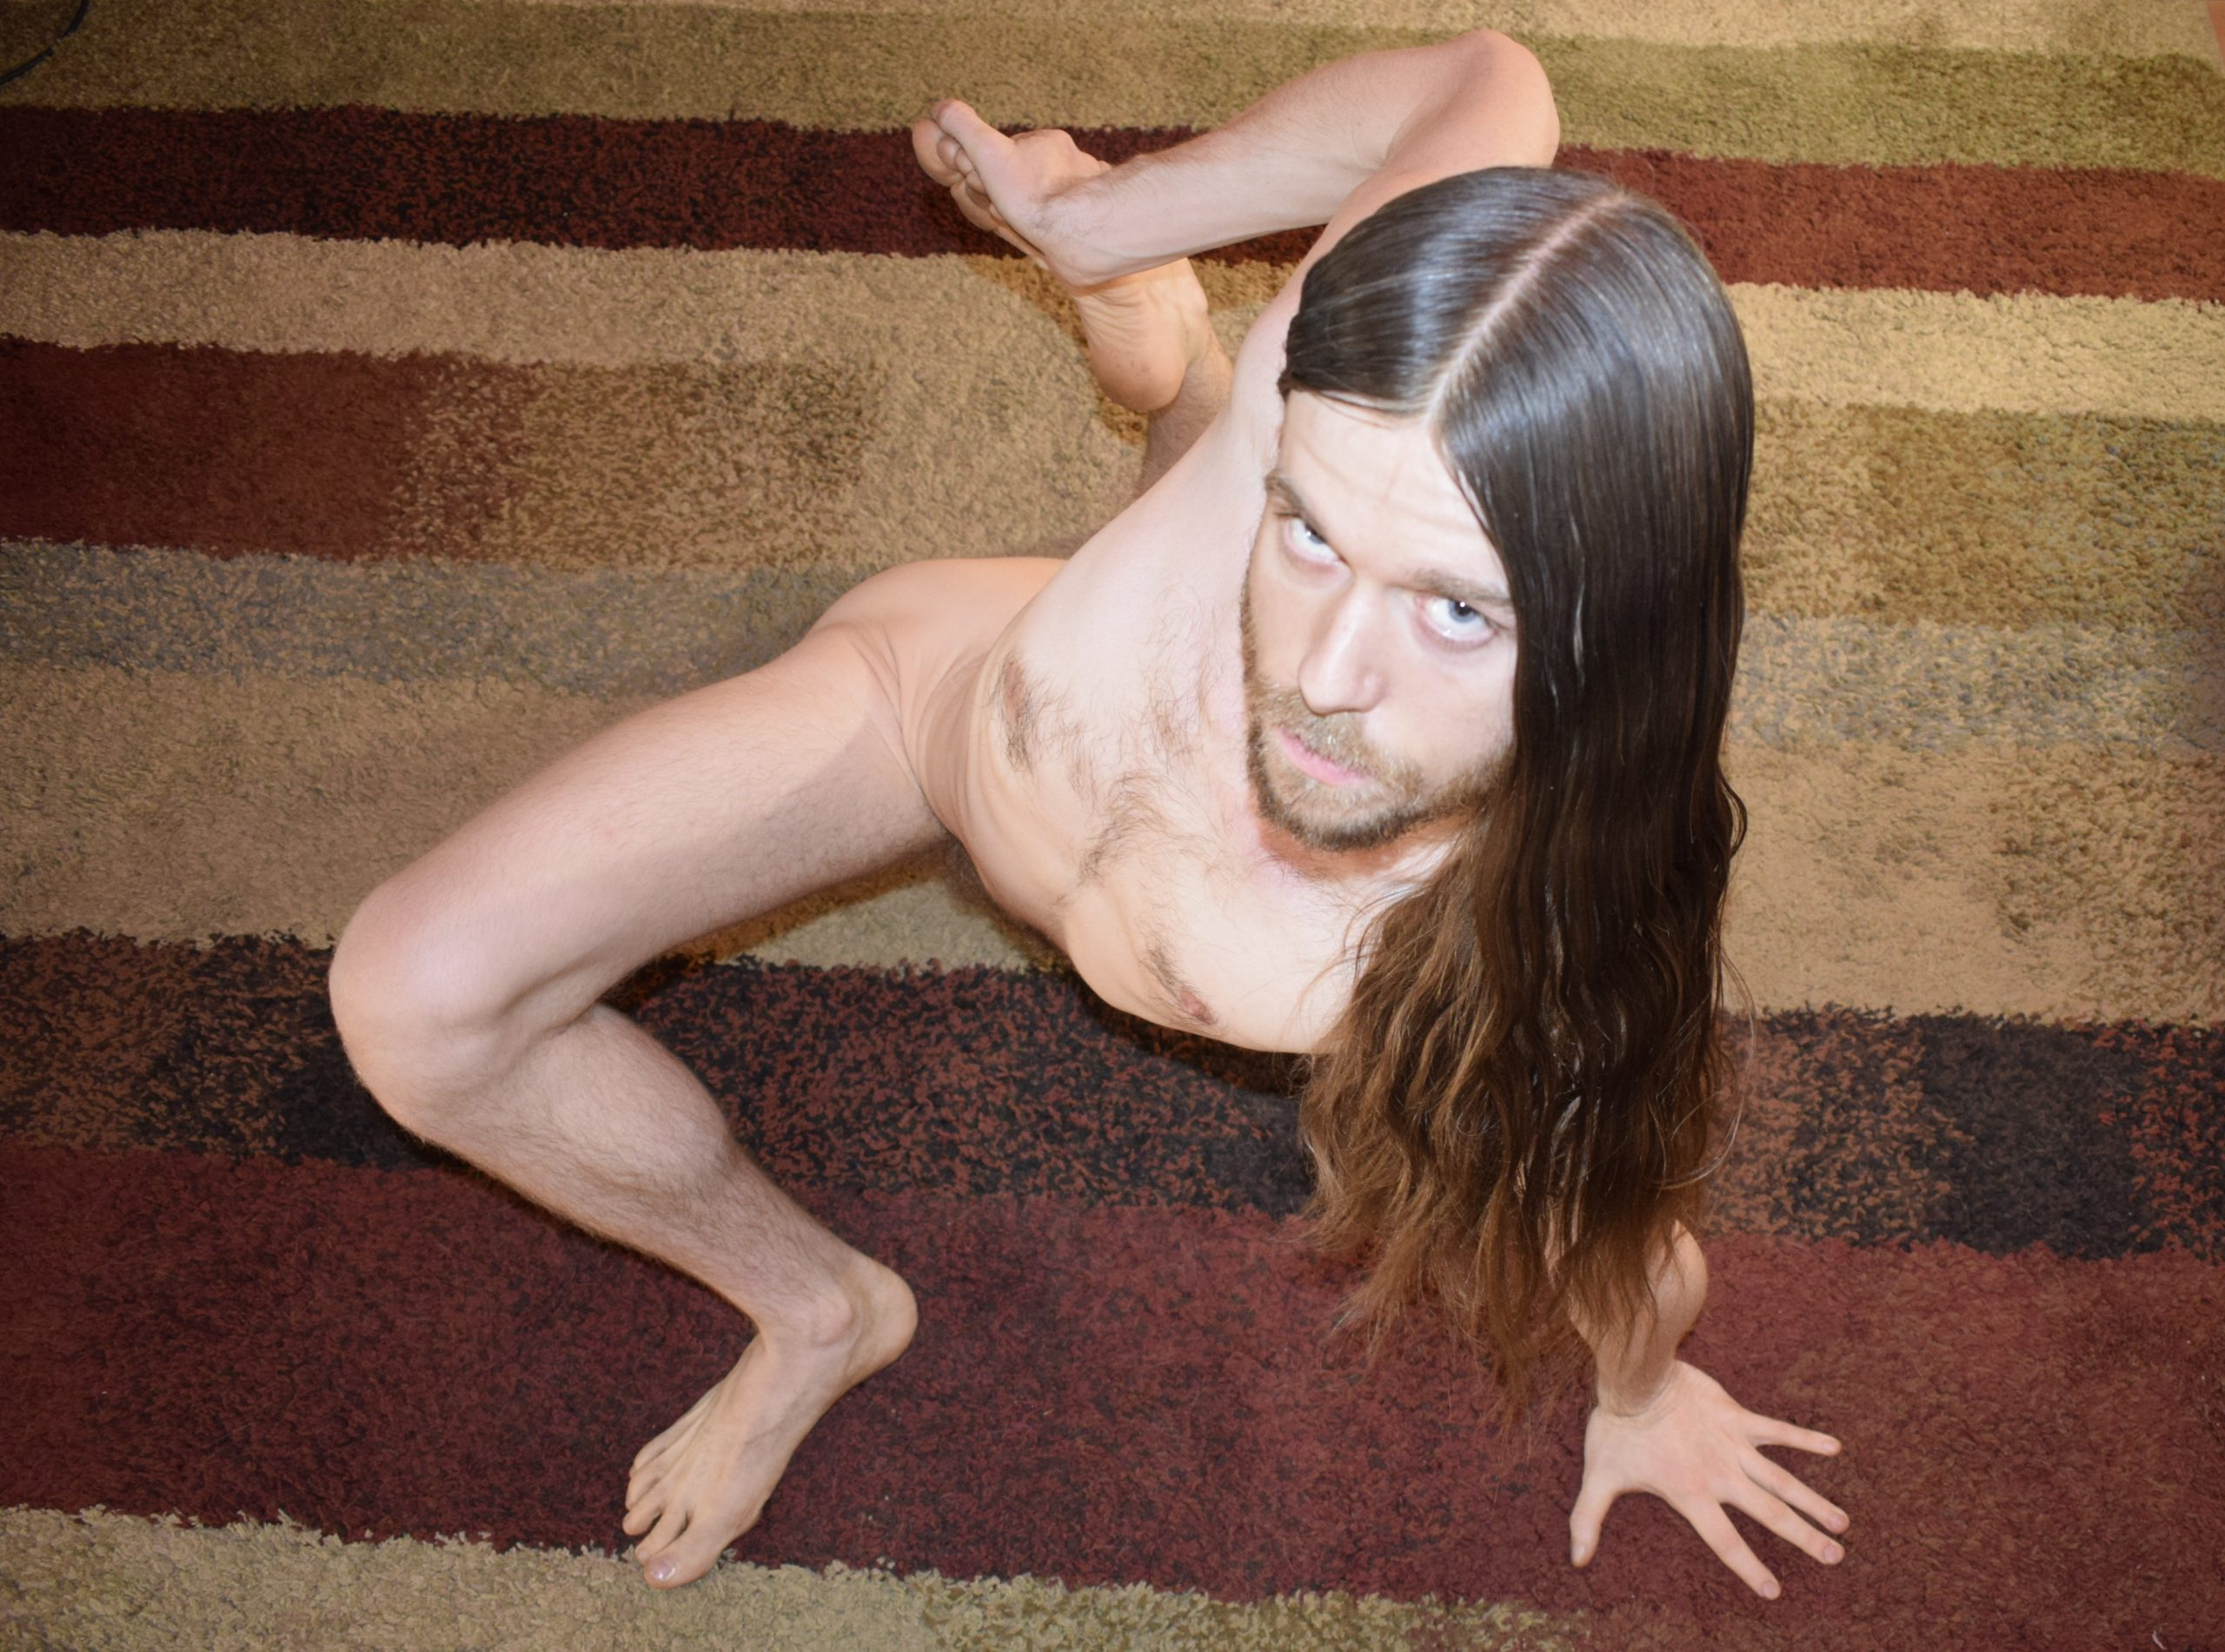 Men's Nude Yoga for Sexual Health photo №0